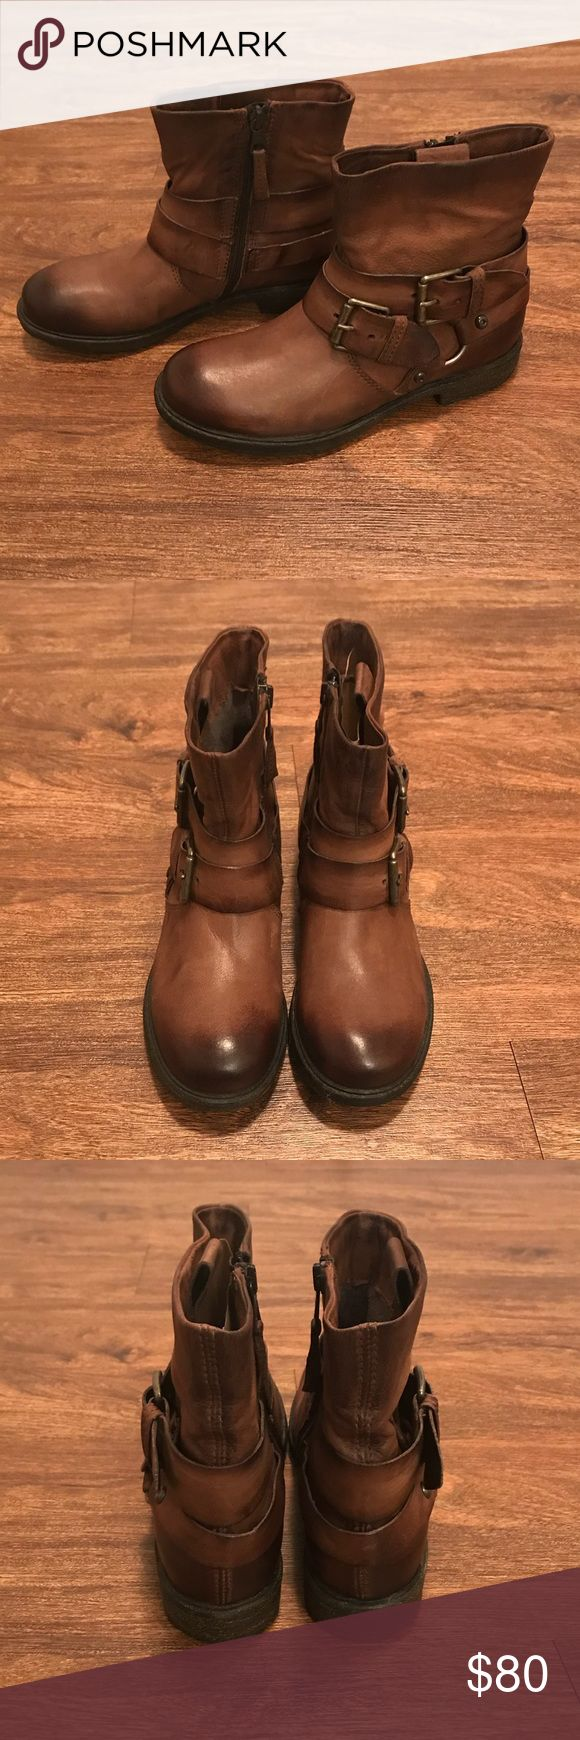 Mjus leather boots Mjus brown leather ankle boots with black highlights. Brand new. Never worn. Made in Italy Mjus Shoes Ankle Boots & Booties